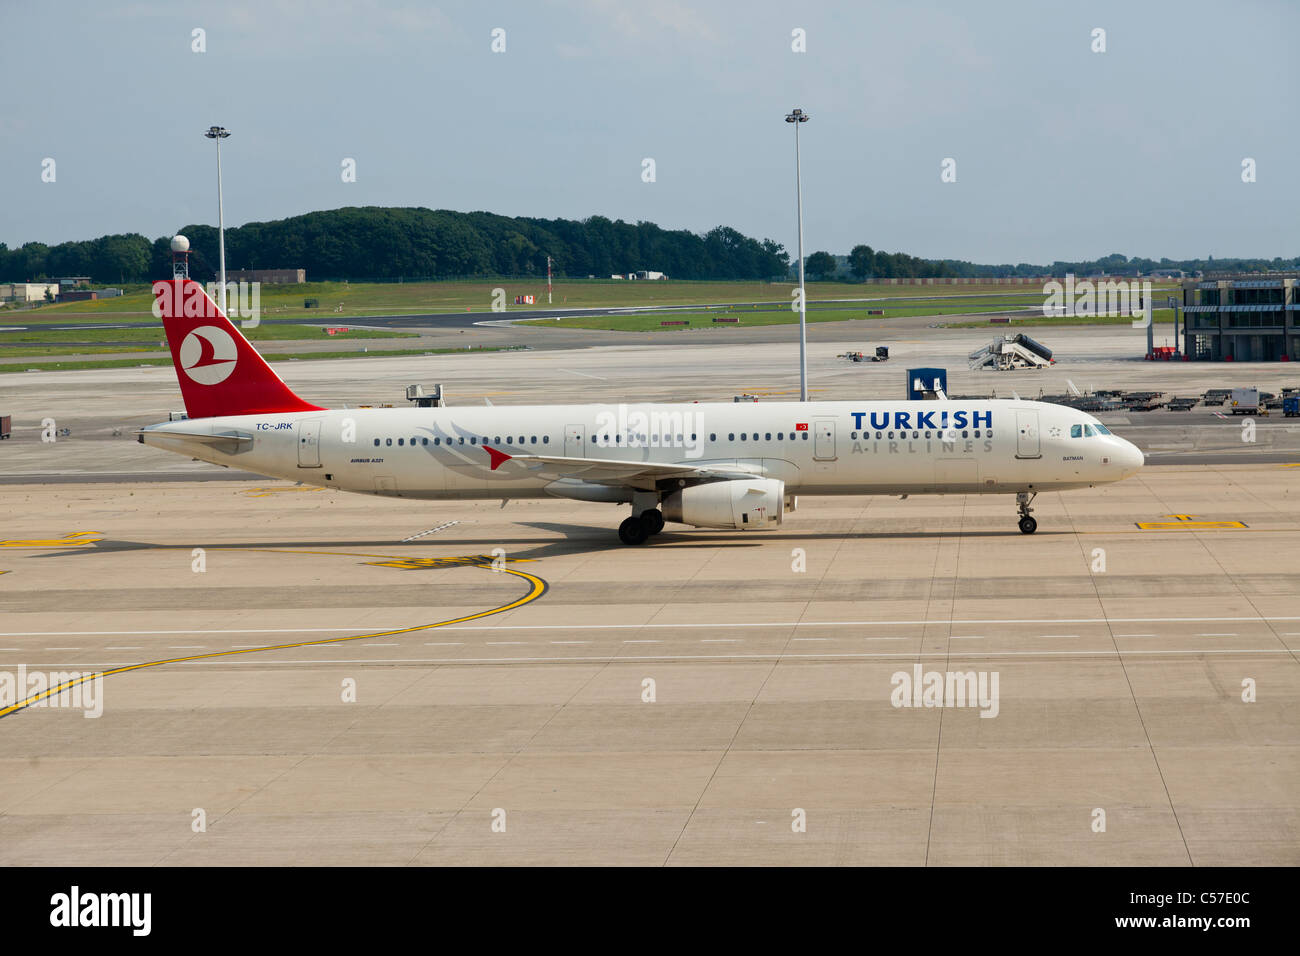 airbus a321 reg tc jrk belonging to turkish airlines at brussels stock photo royalty free. Black Bedroom Furniture Sets. Home Design Ideas